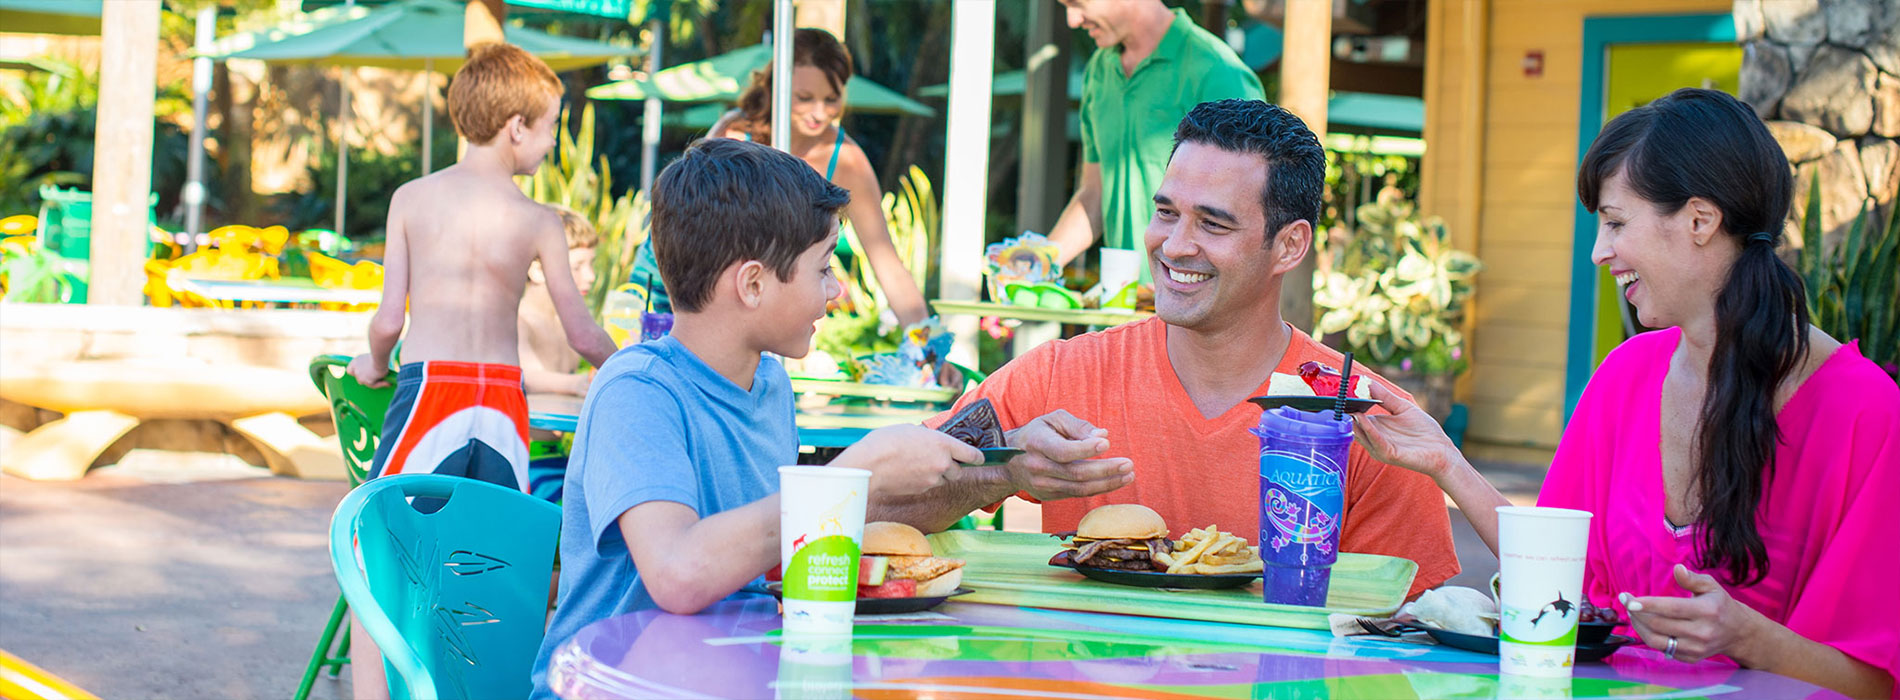 Dining at Aquatica San Diego